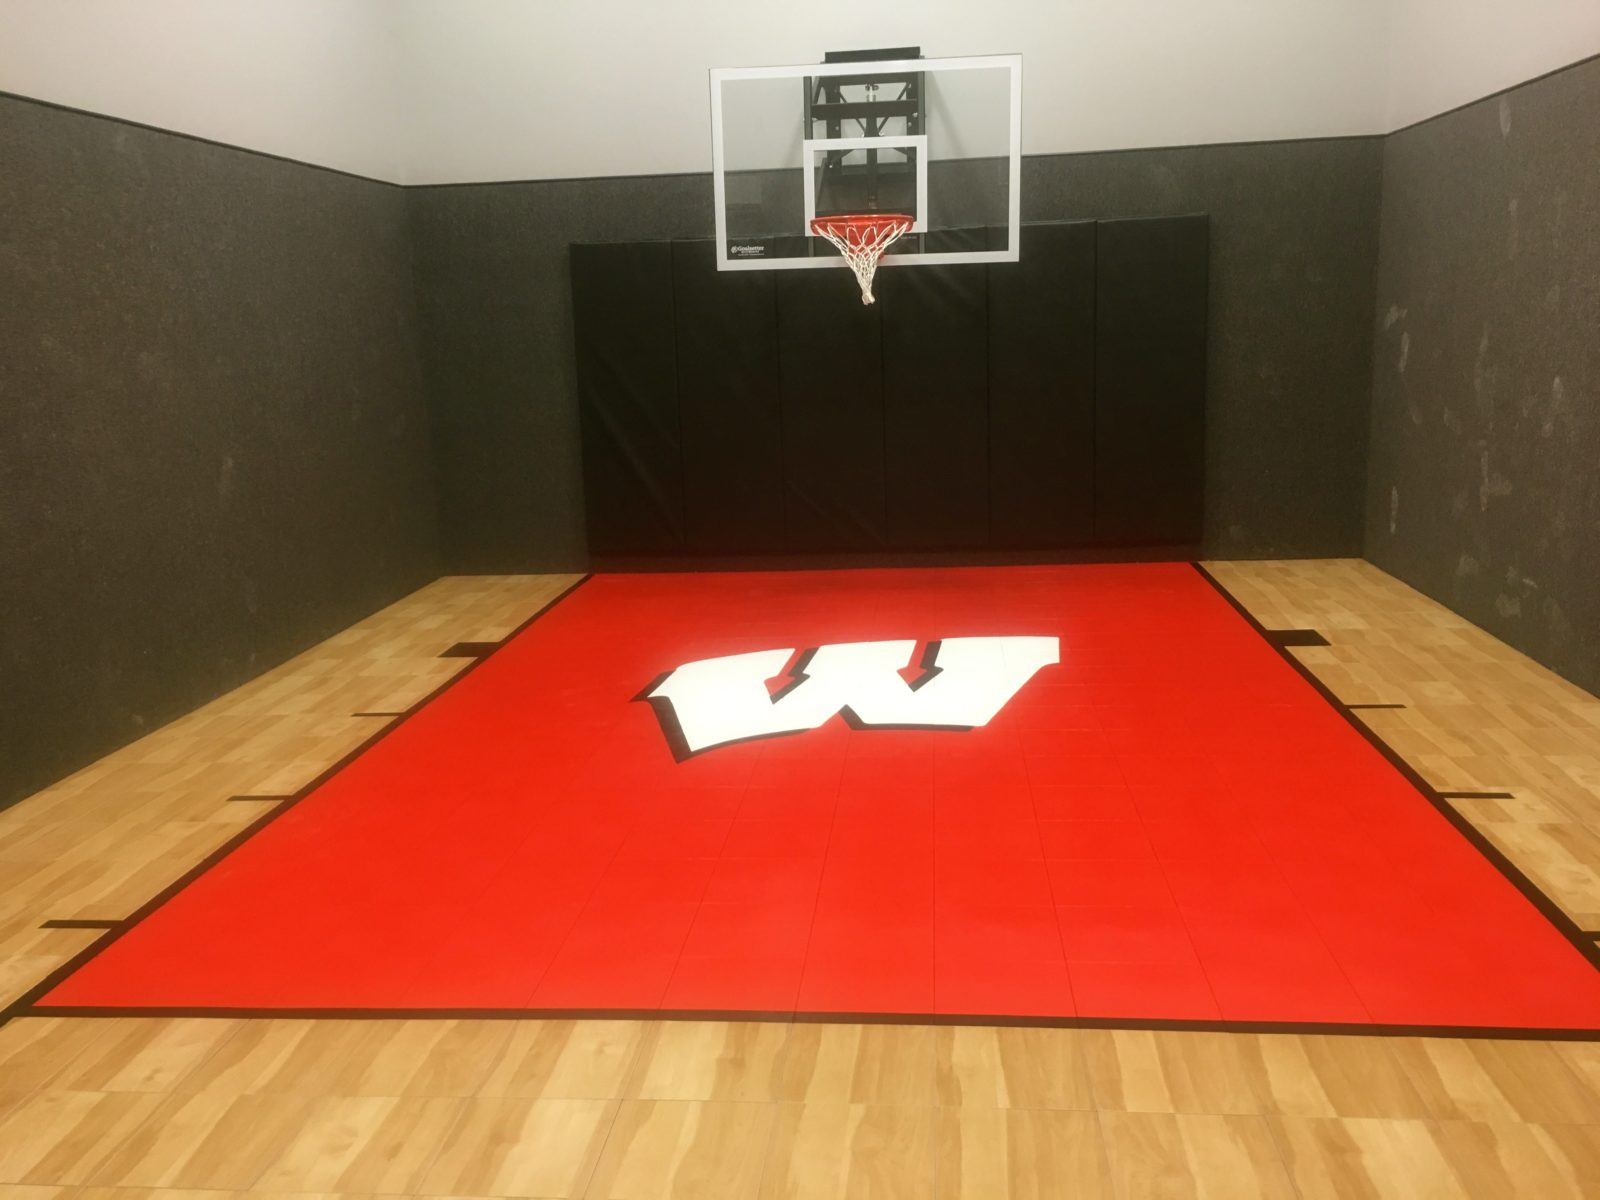 Indoor home gyms courts athletic surfaces millz house for Indoor basketball court design